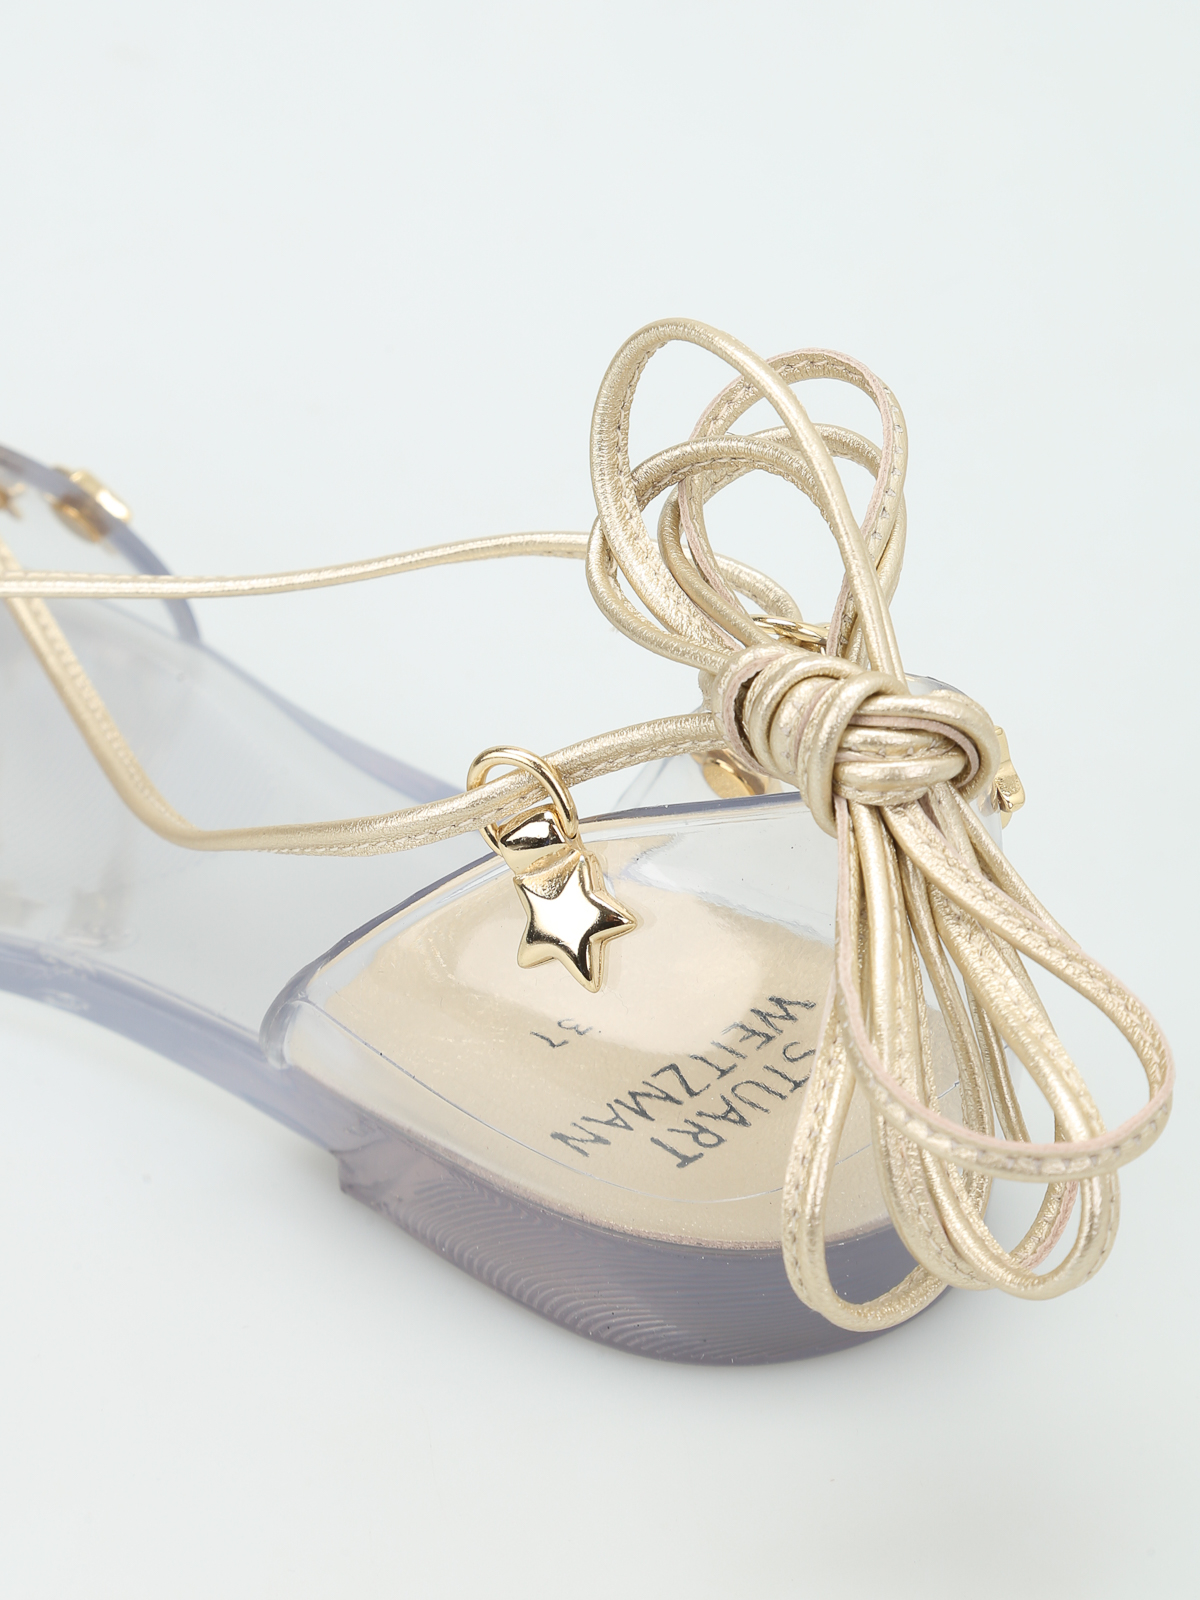 7a9e4d493f96 Stuart Weitzman - Glass Noodles Star jelly sandals - sandals - VL76240